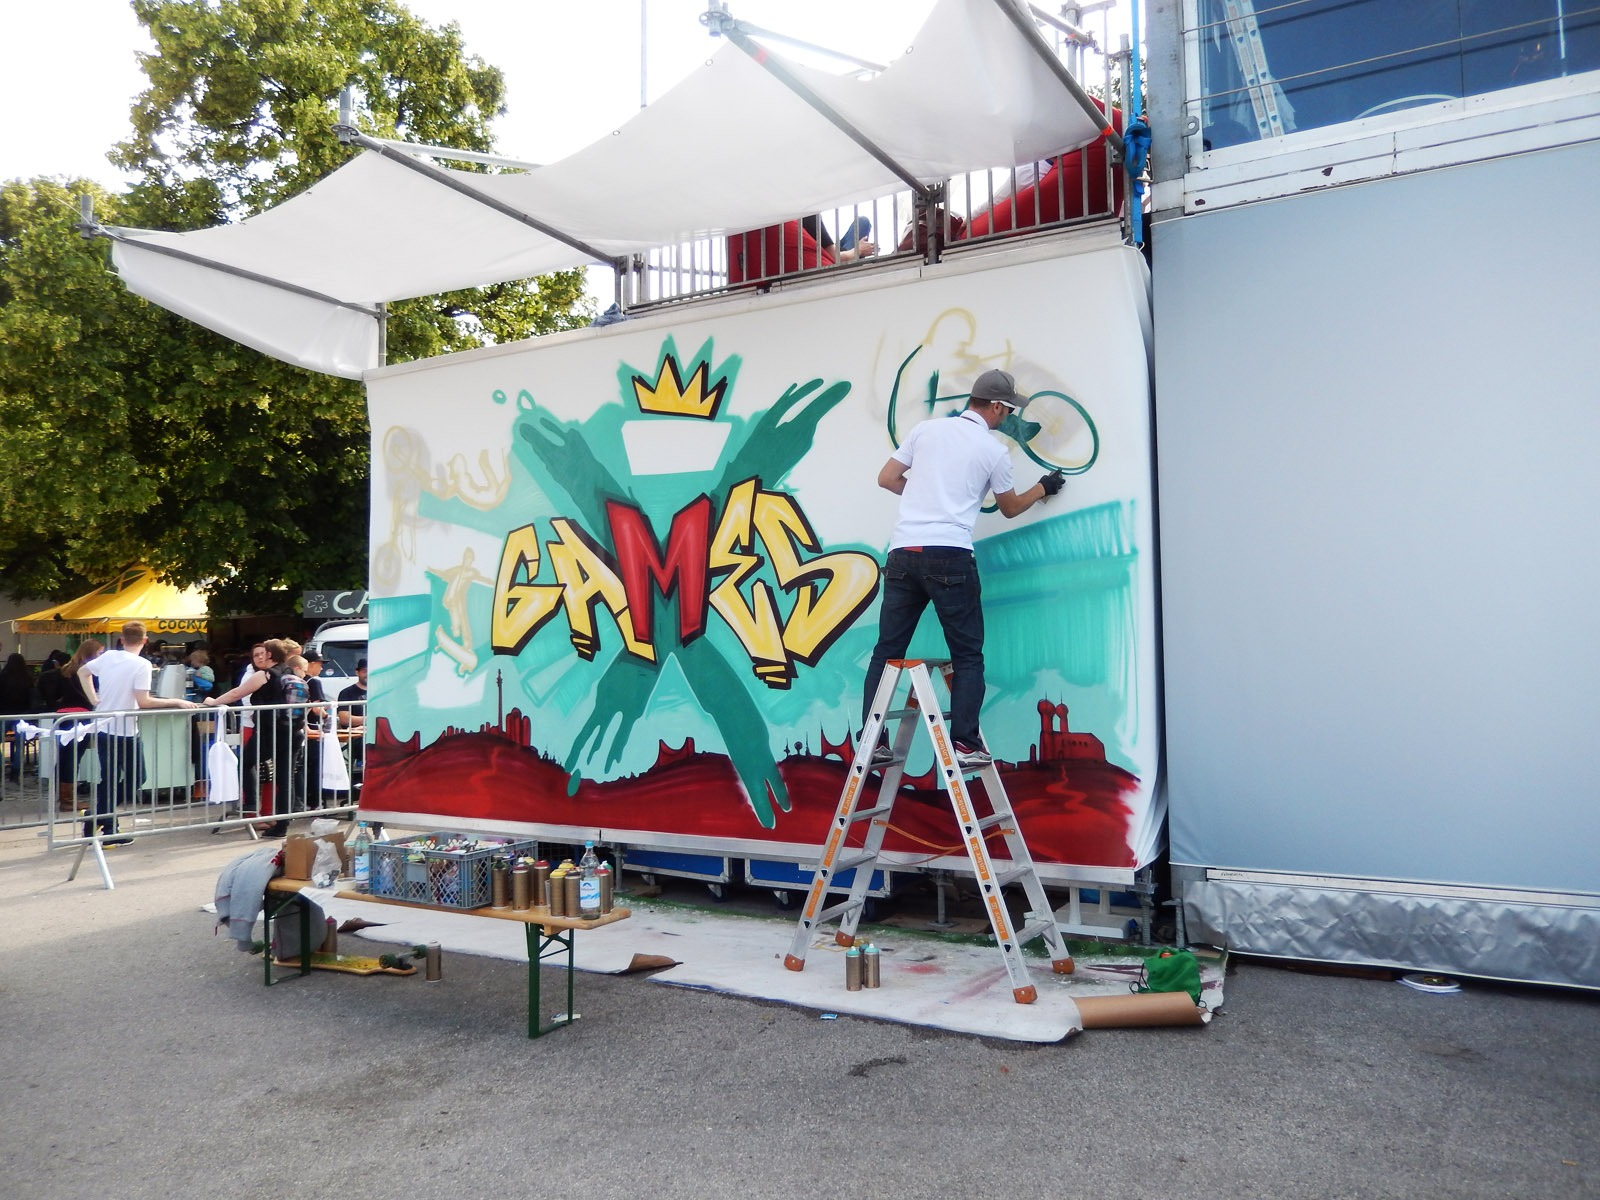 graffitiauftrag_graffitikuenstler_showgraffiti_artmos4_x_games_event_graffiti_9